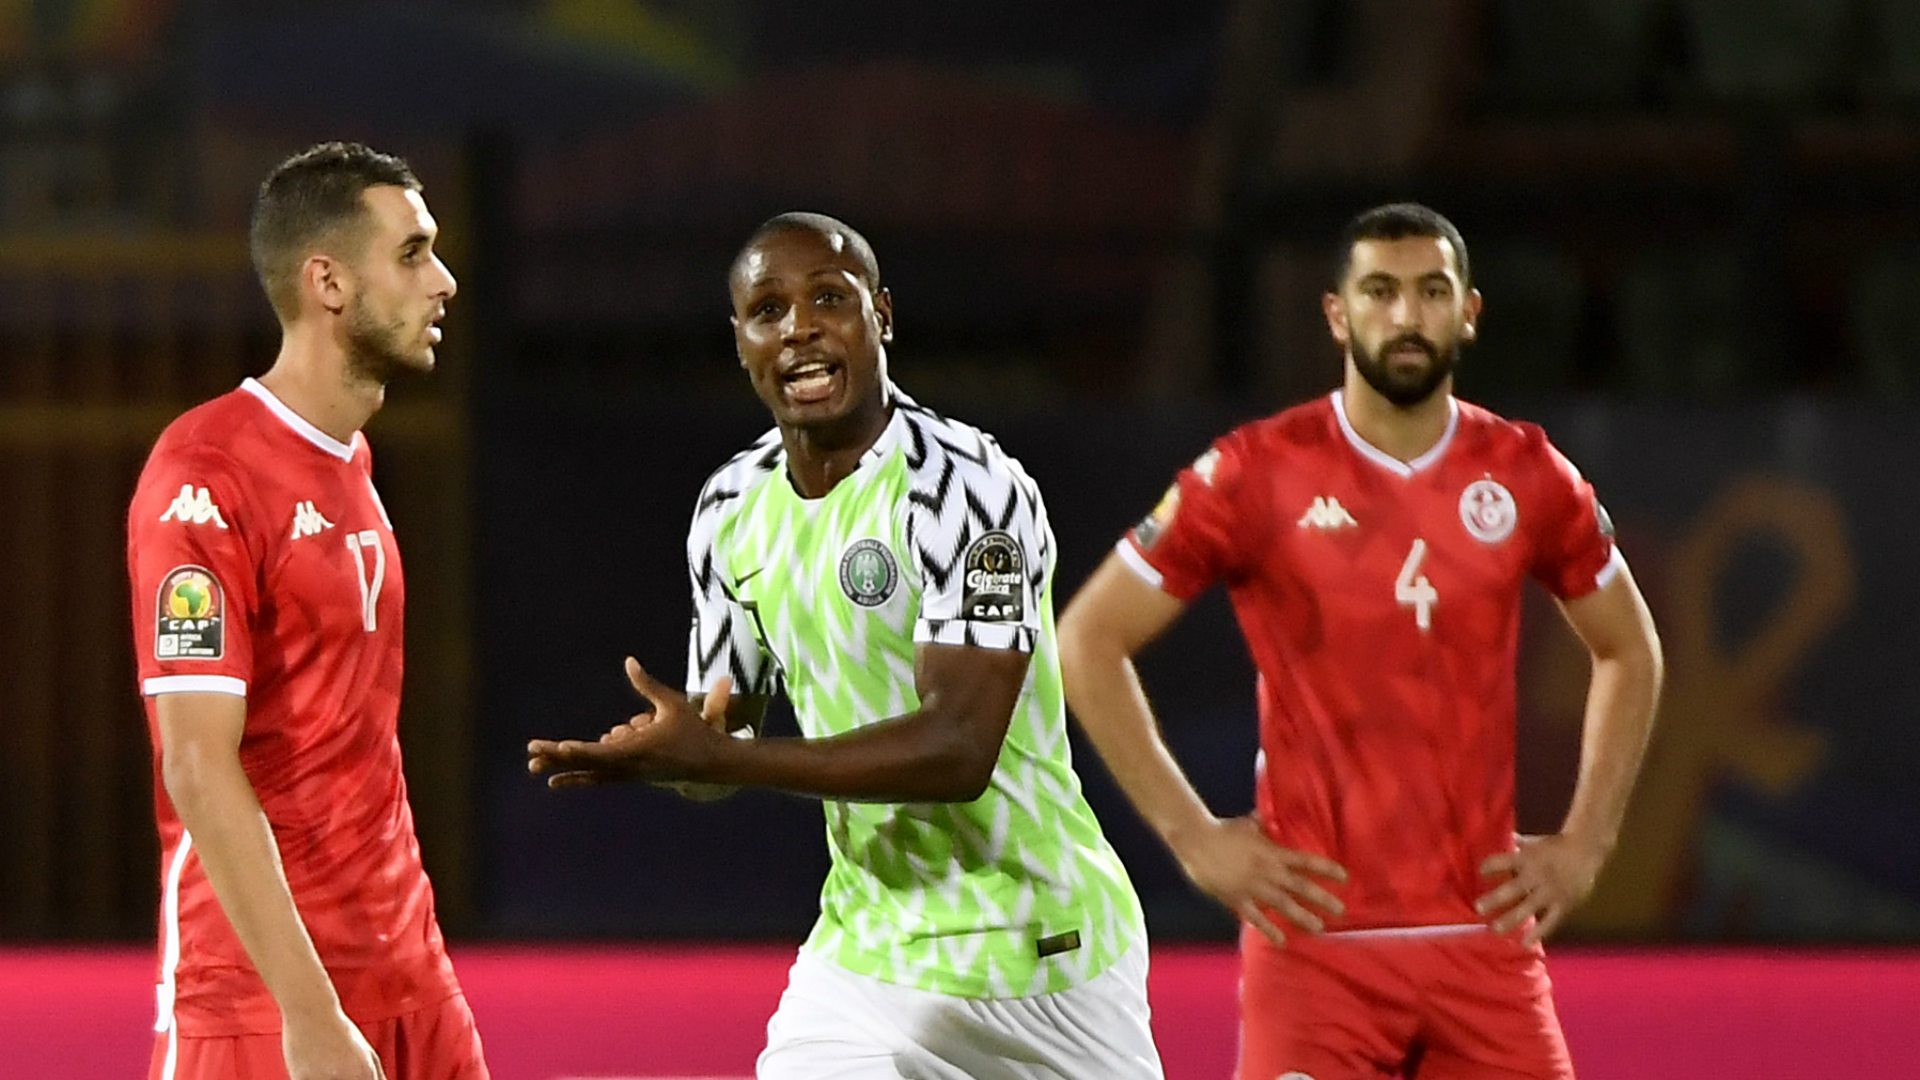 Afcon 2019: Nigeria 1-0 Tunisia: What did we learn?